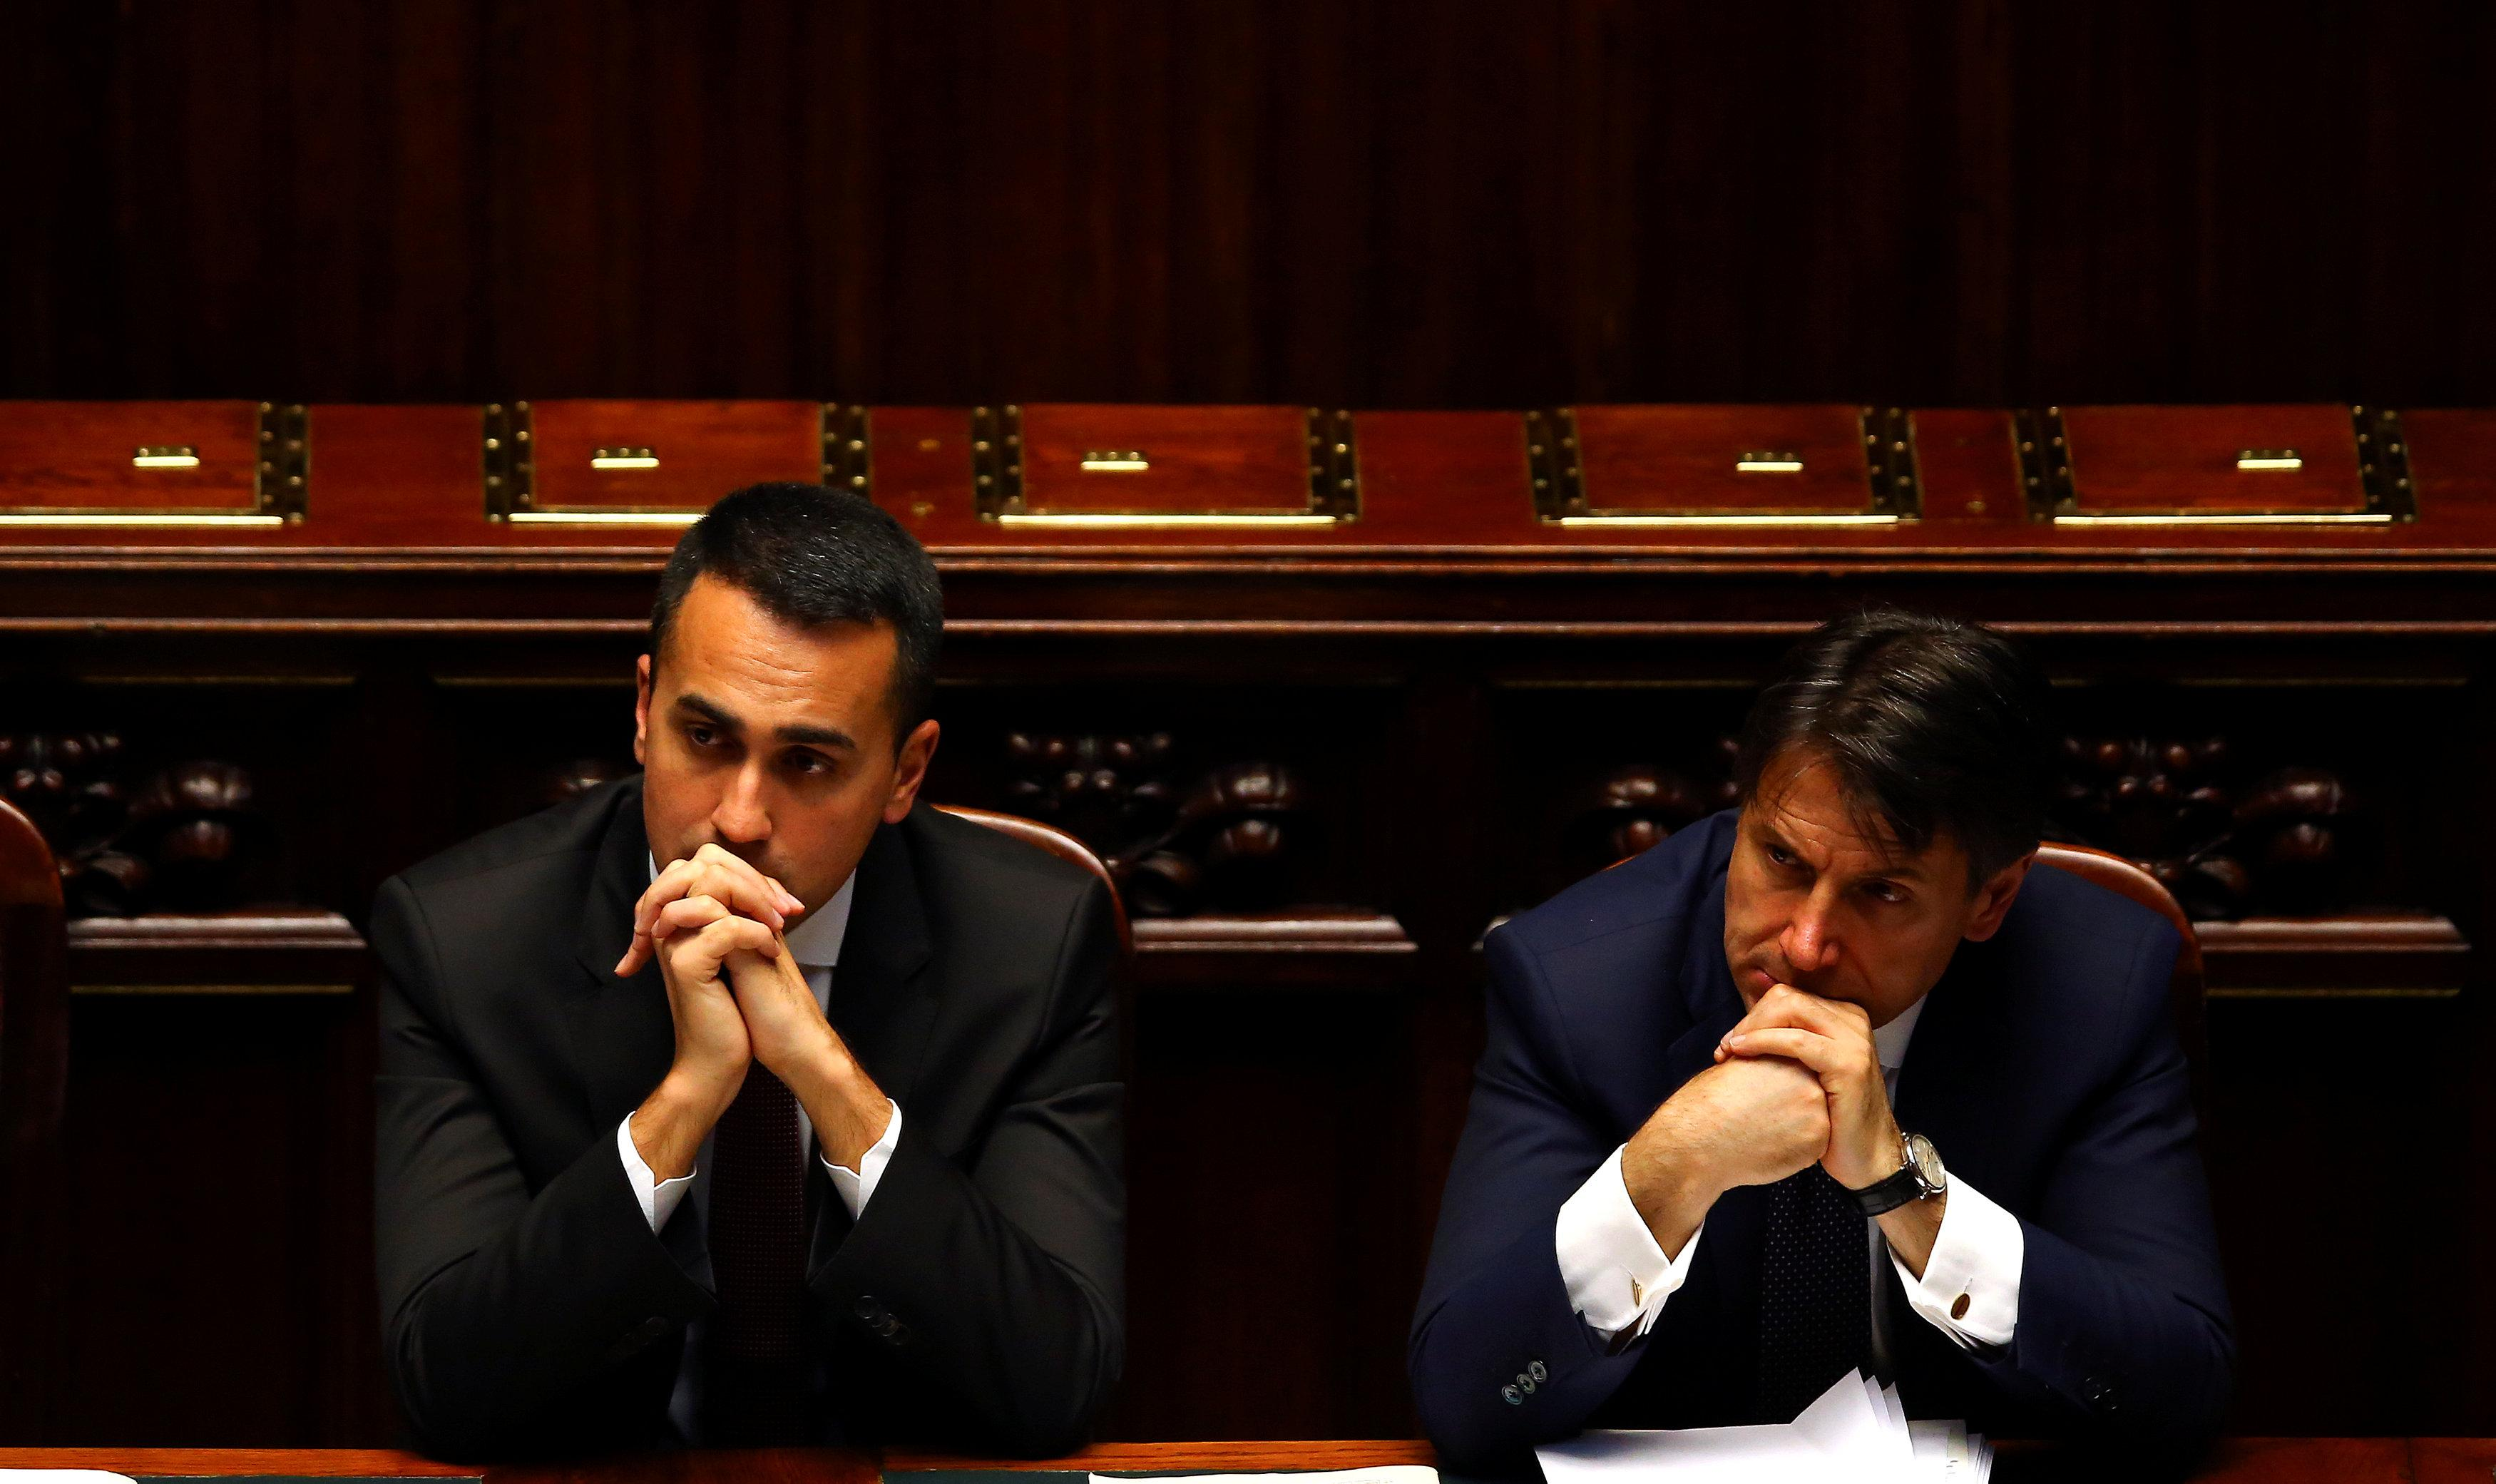 Italian Minister of Labor and Industry Luigi Di Maio listens next to Prime Minister Giuseppe Conte during his first session at the Lower House of the Parliament in Rome, Italy, June 6, 2018. Tony Gentile